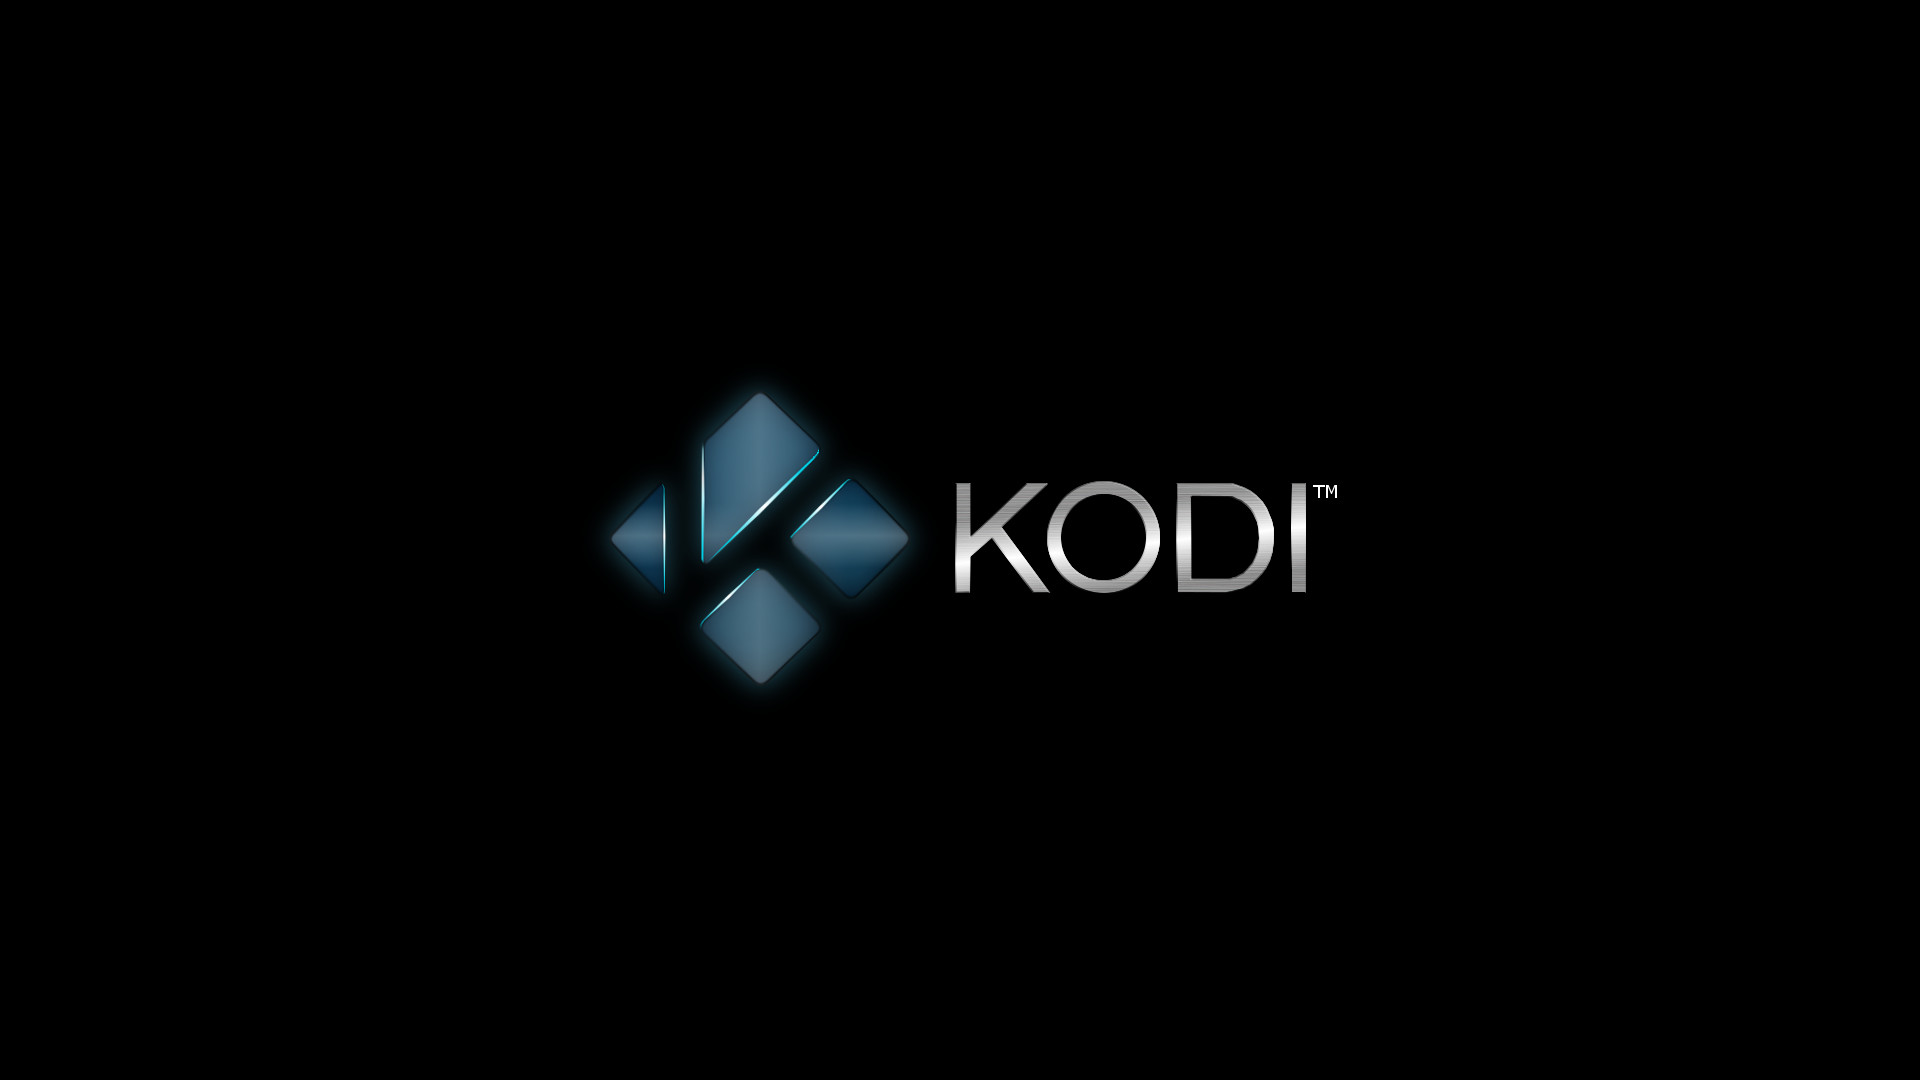 1920x1080 See BeautifulHd Wallpapers Kodi photos images and pics Shared by our